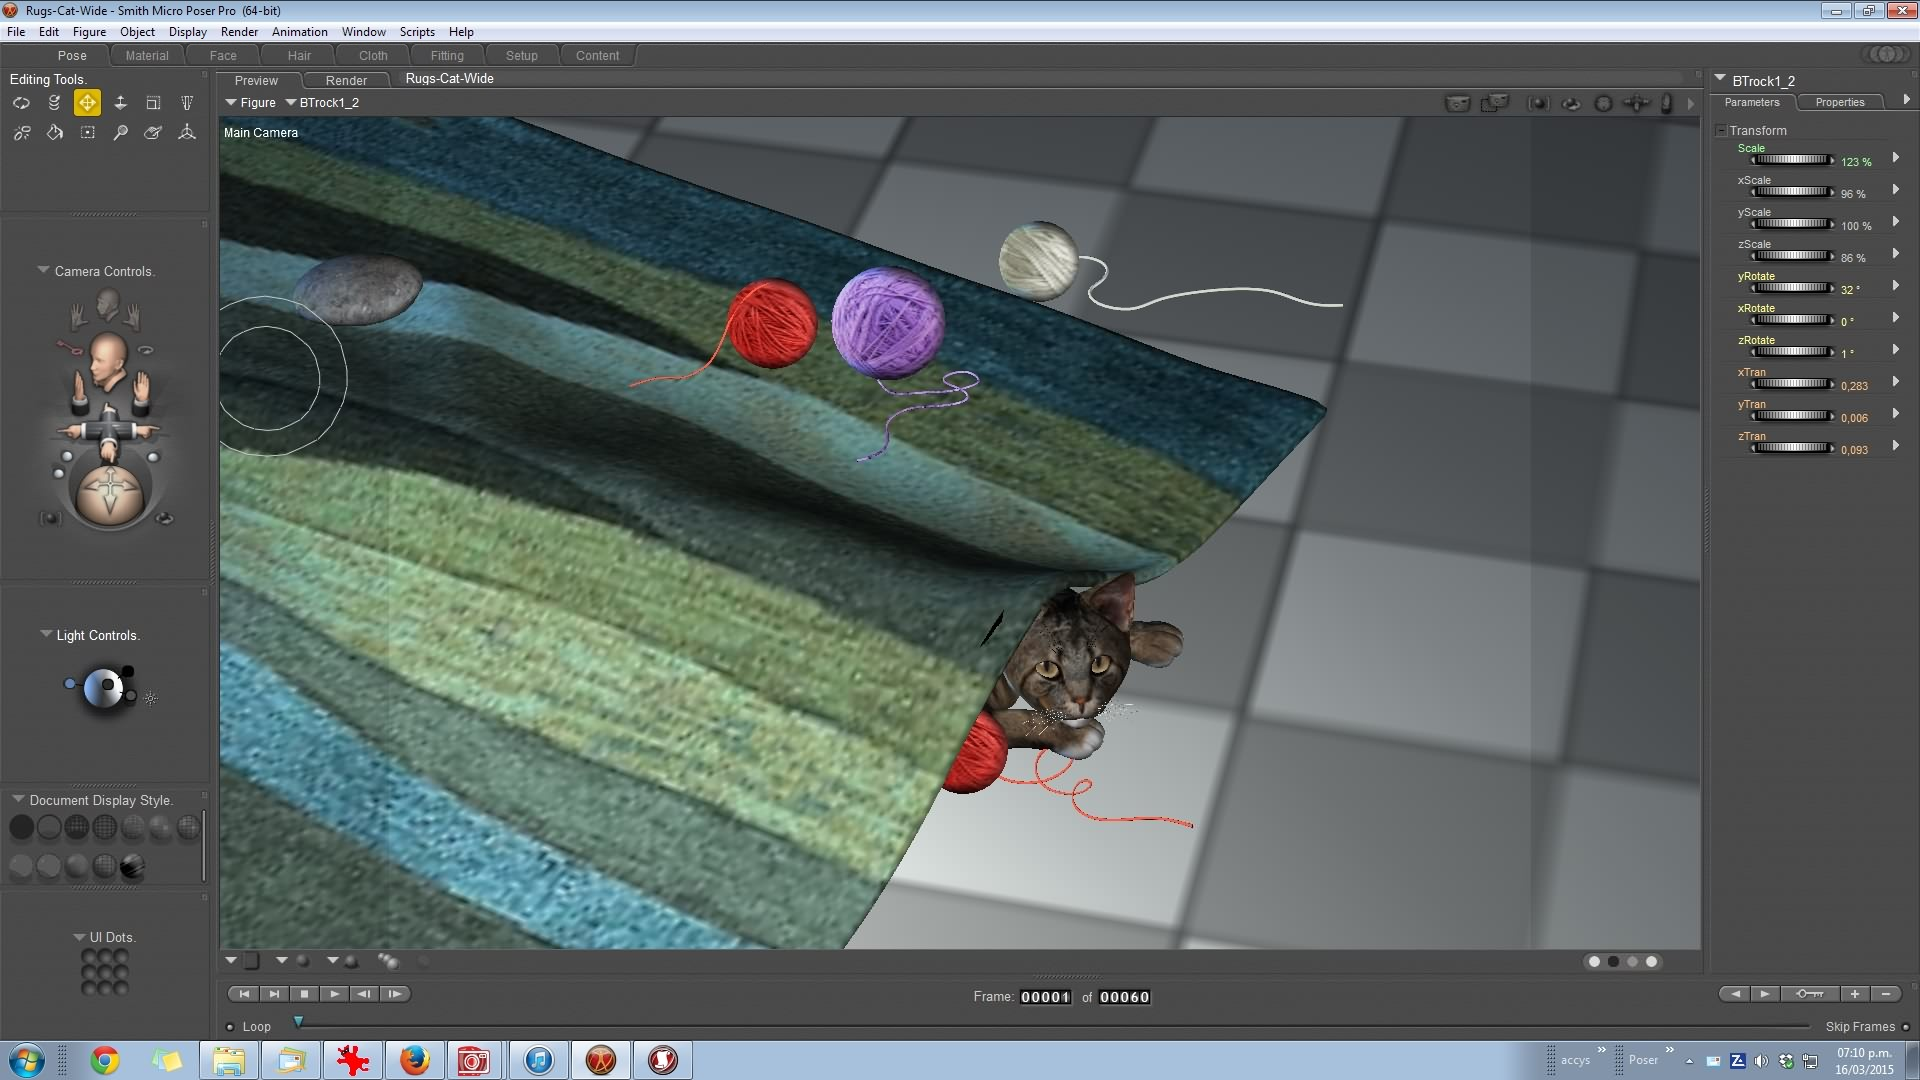 A Cat under the rug in Poser